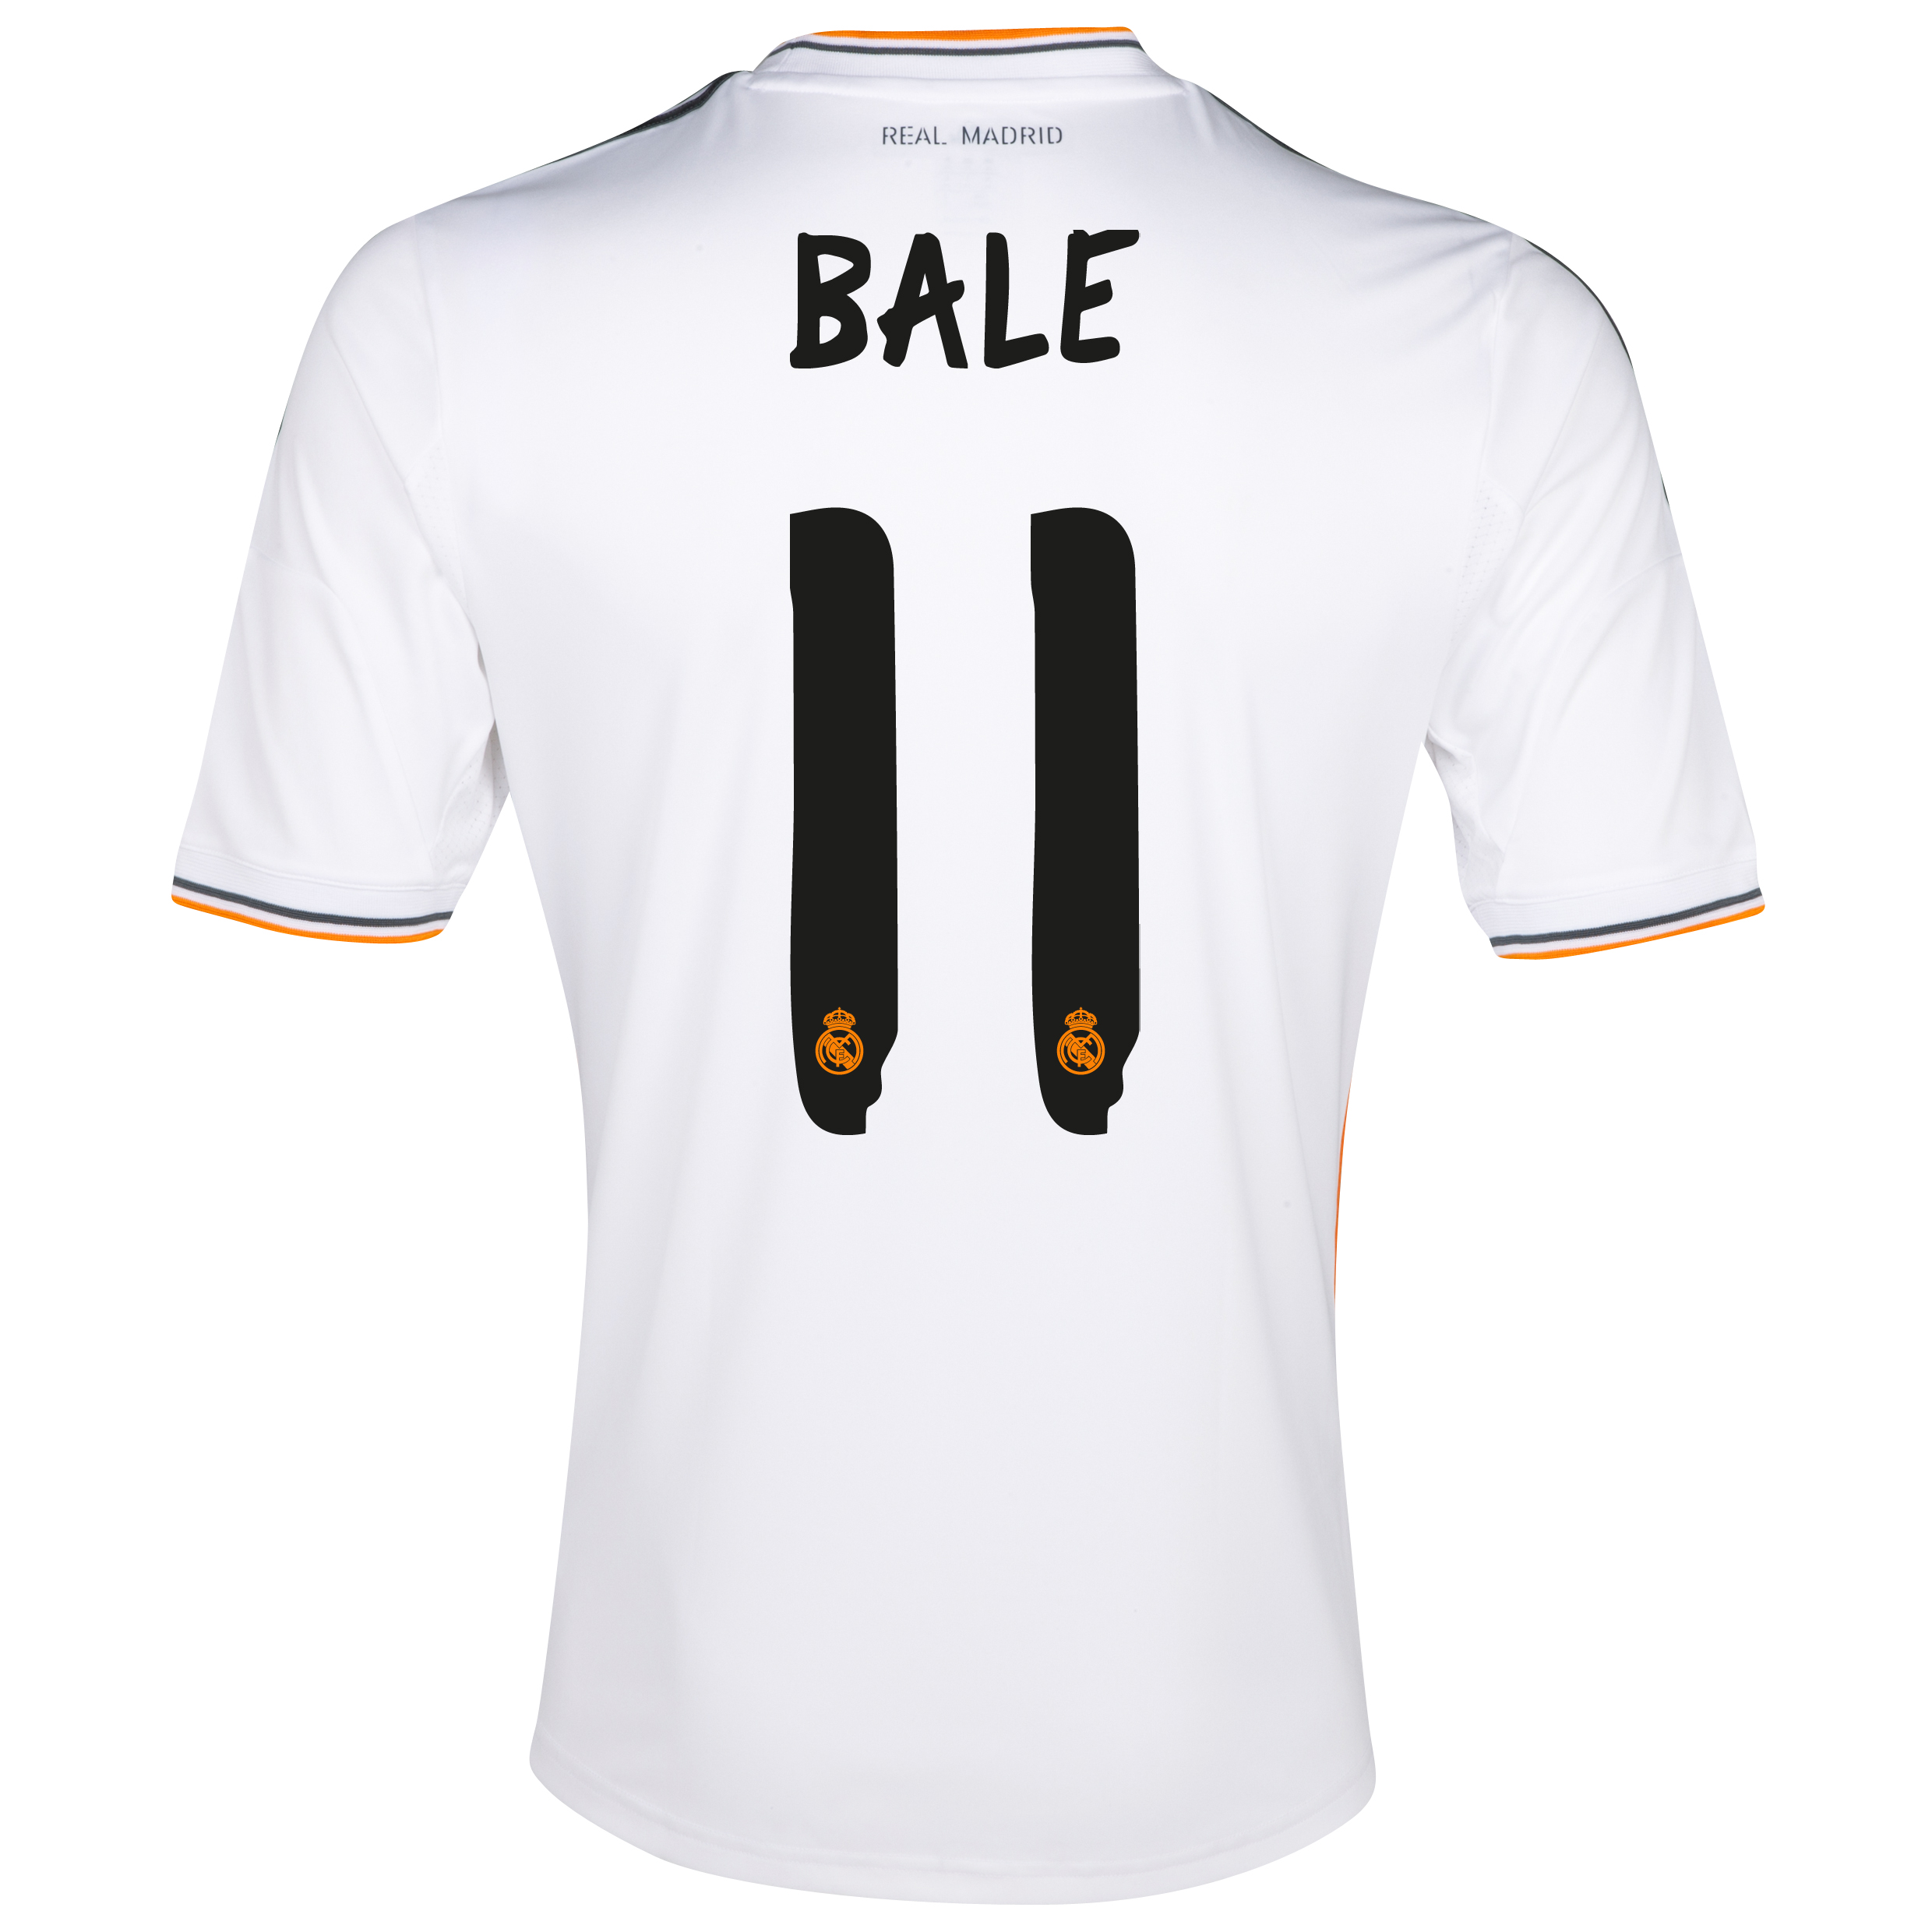 Real Madrid Home Shirt 2013/14 - Kids with Bale 11 printing